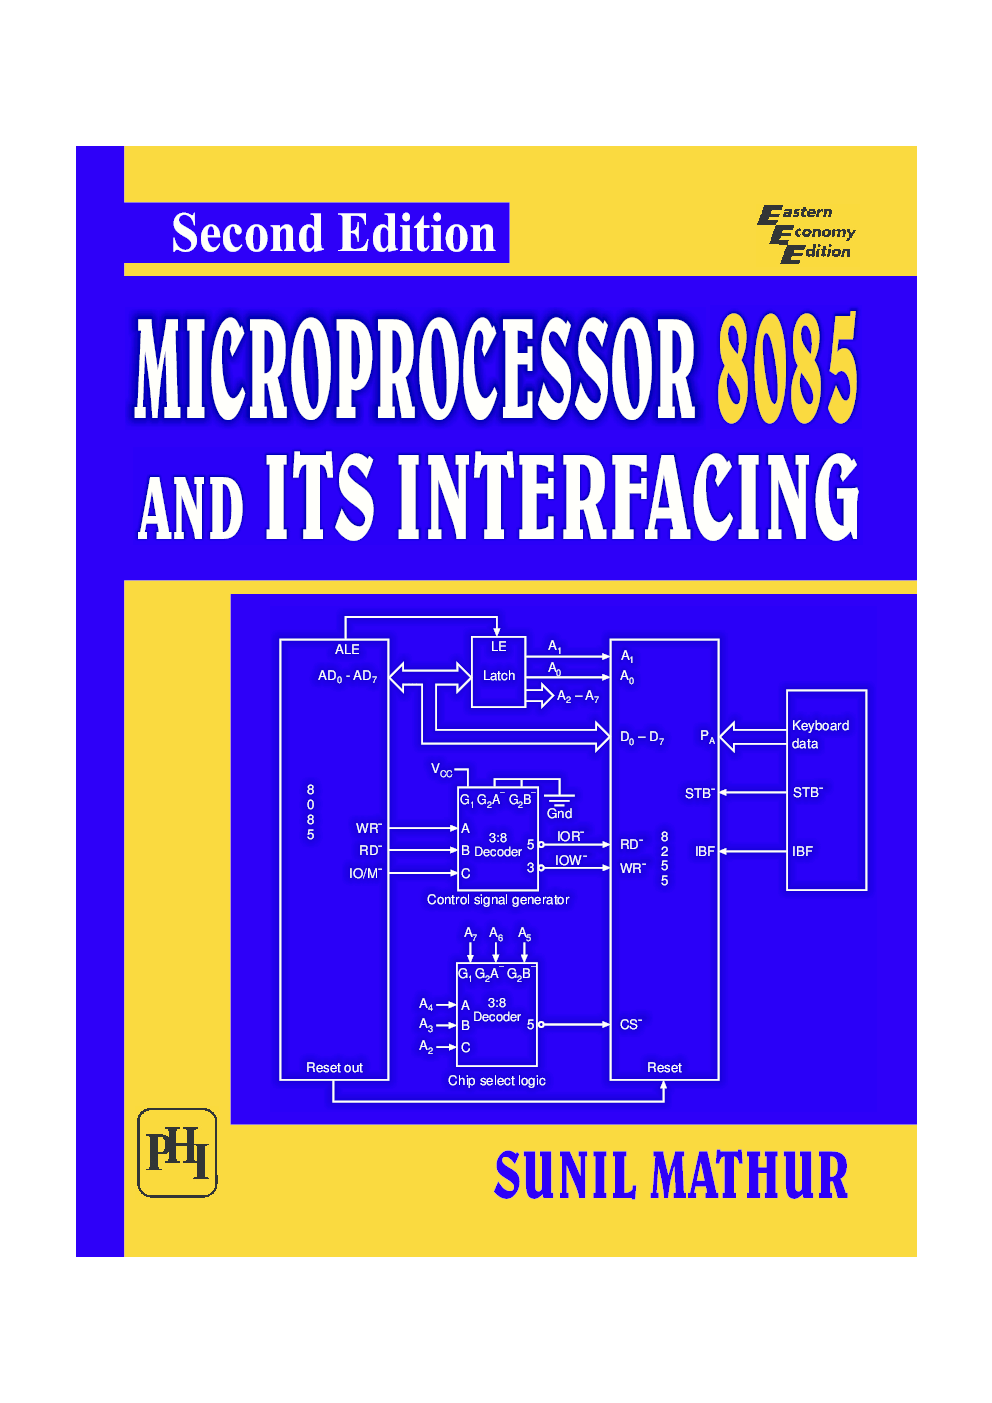 Microprocessor 8085 And Its Interfacing - Page 1